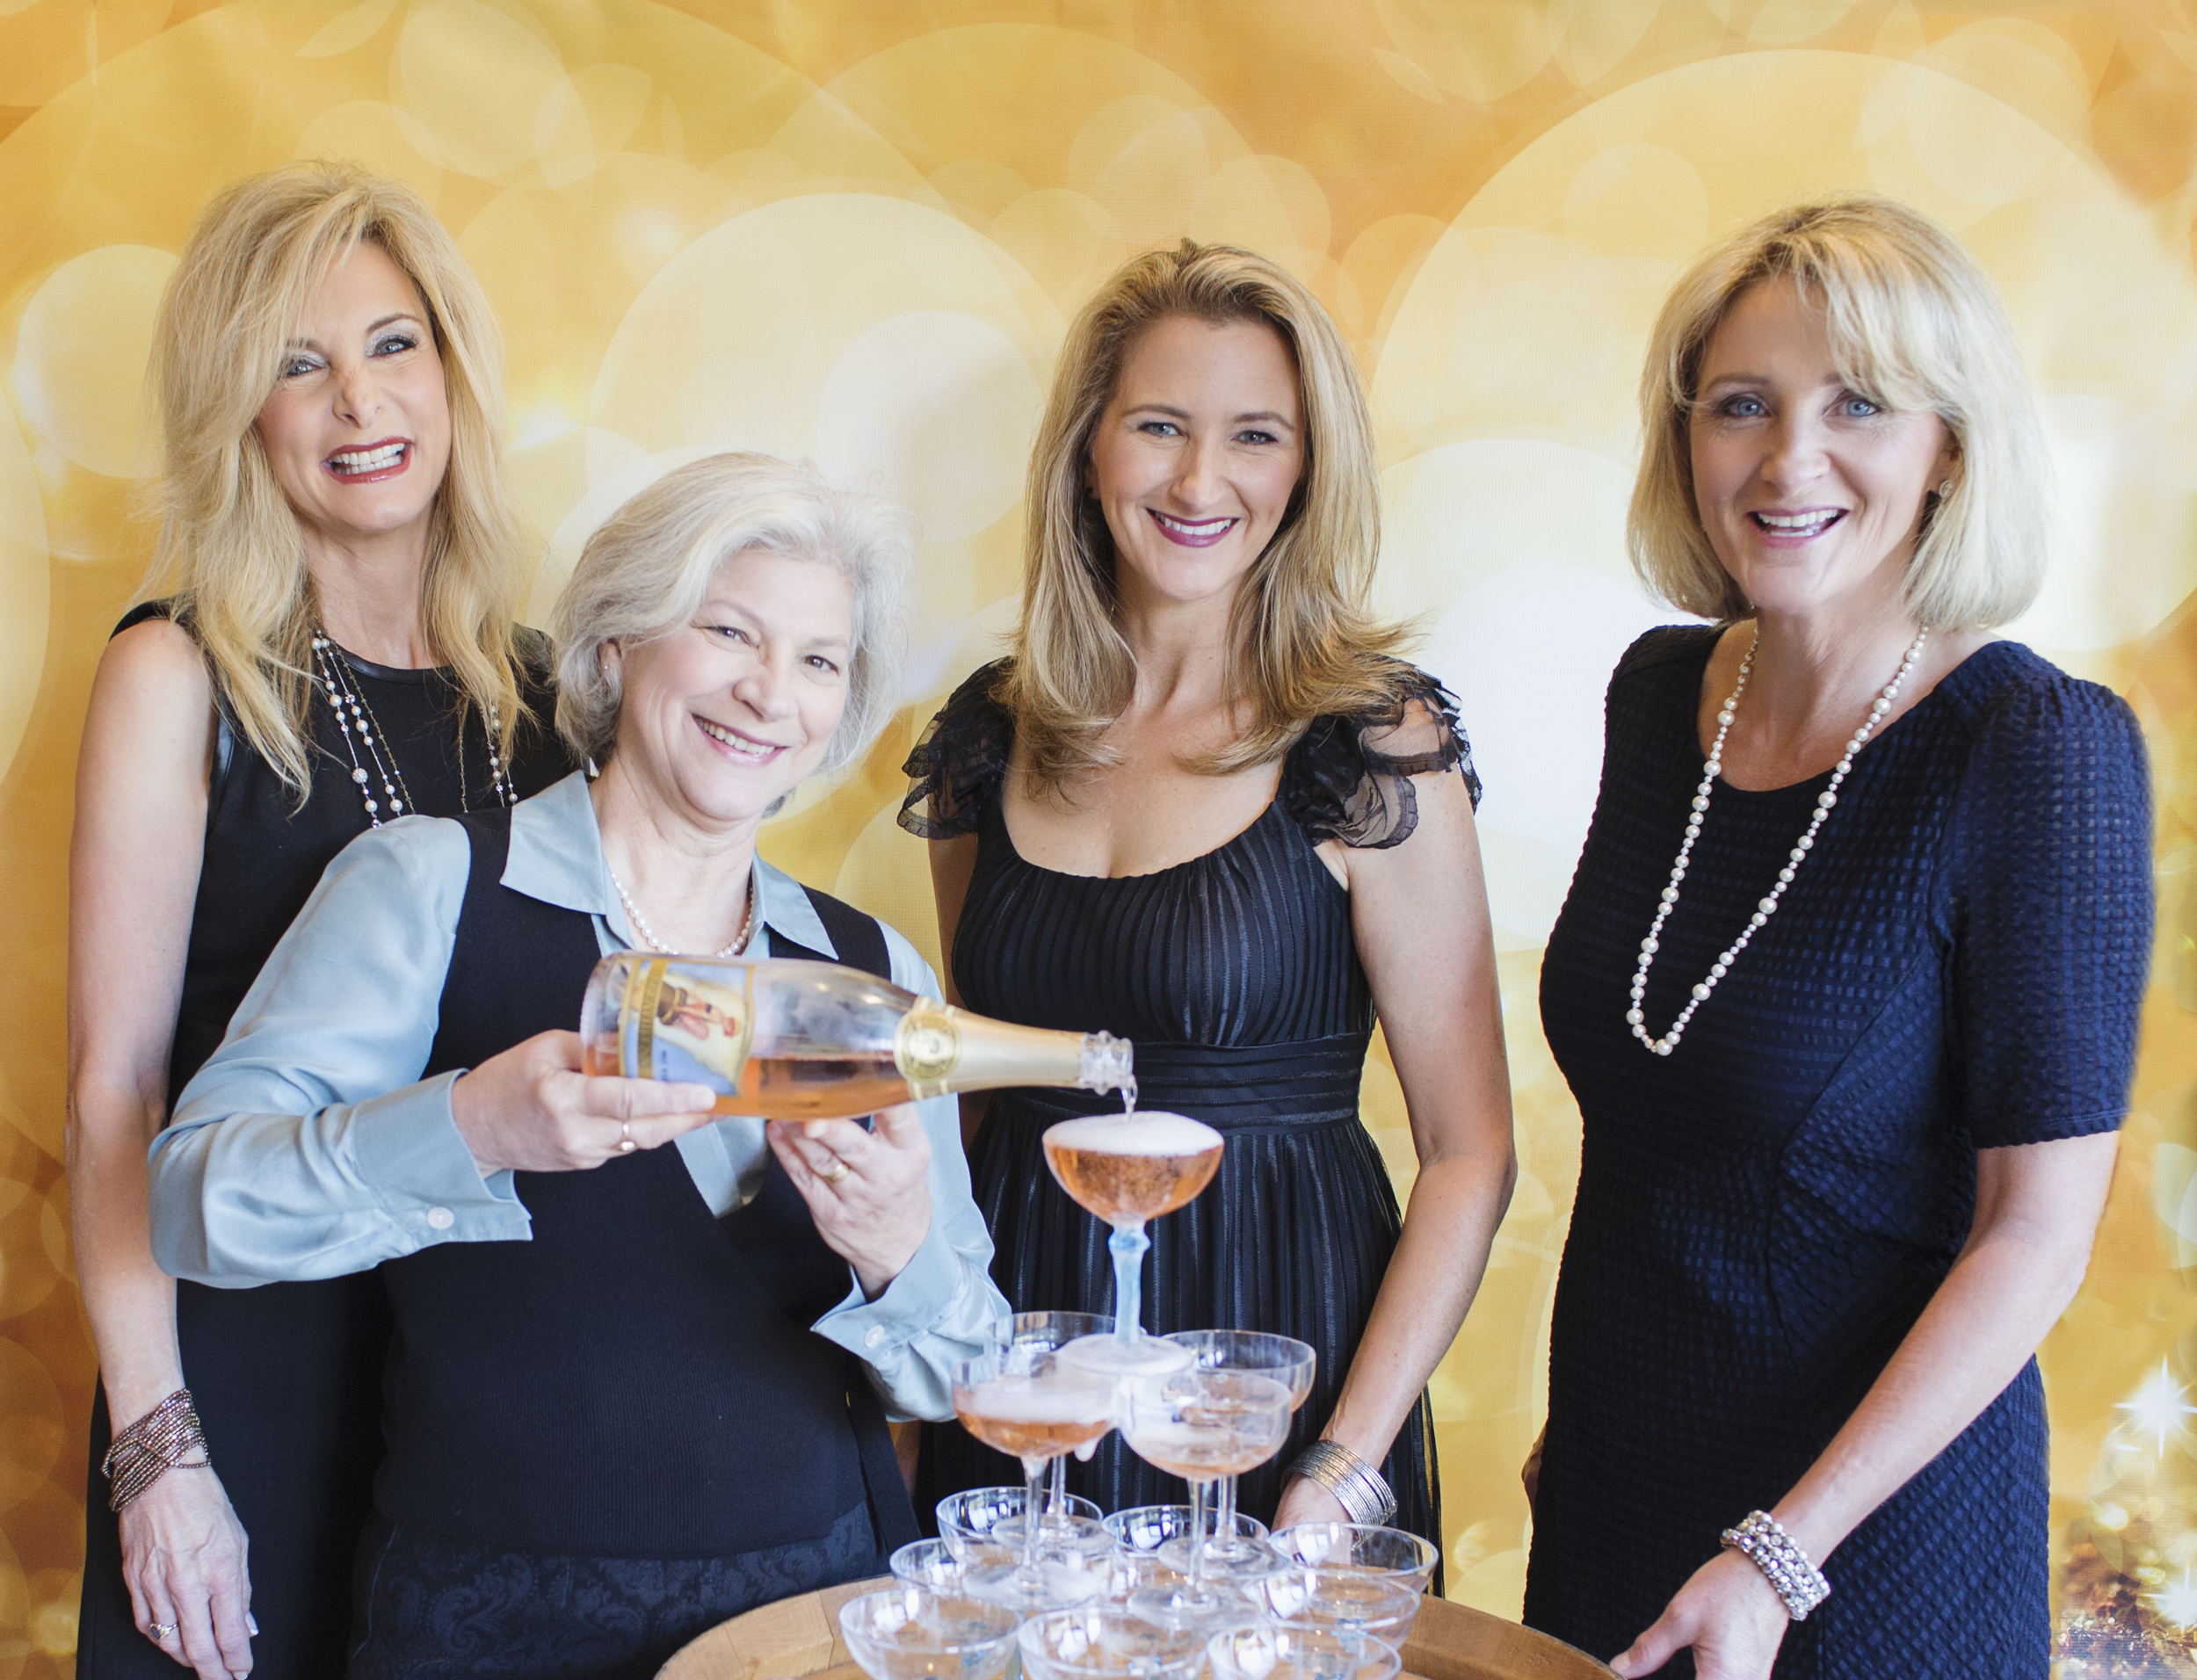 The Breathless Wine Team: (L->R): Sharon Cohn, winemaker Penny Gadd-Coster (pouring), Cynthia Faust, and Rebecca Faust